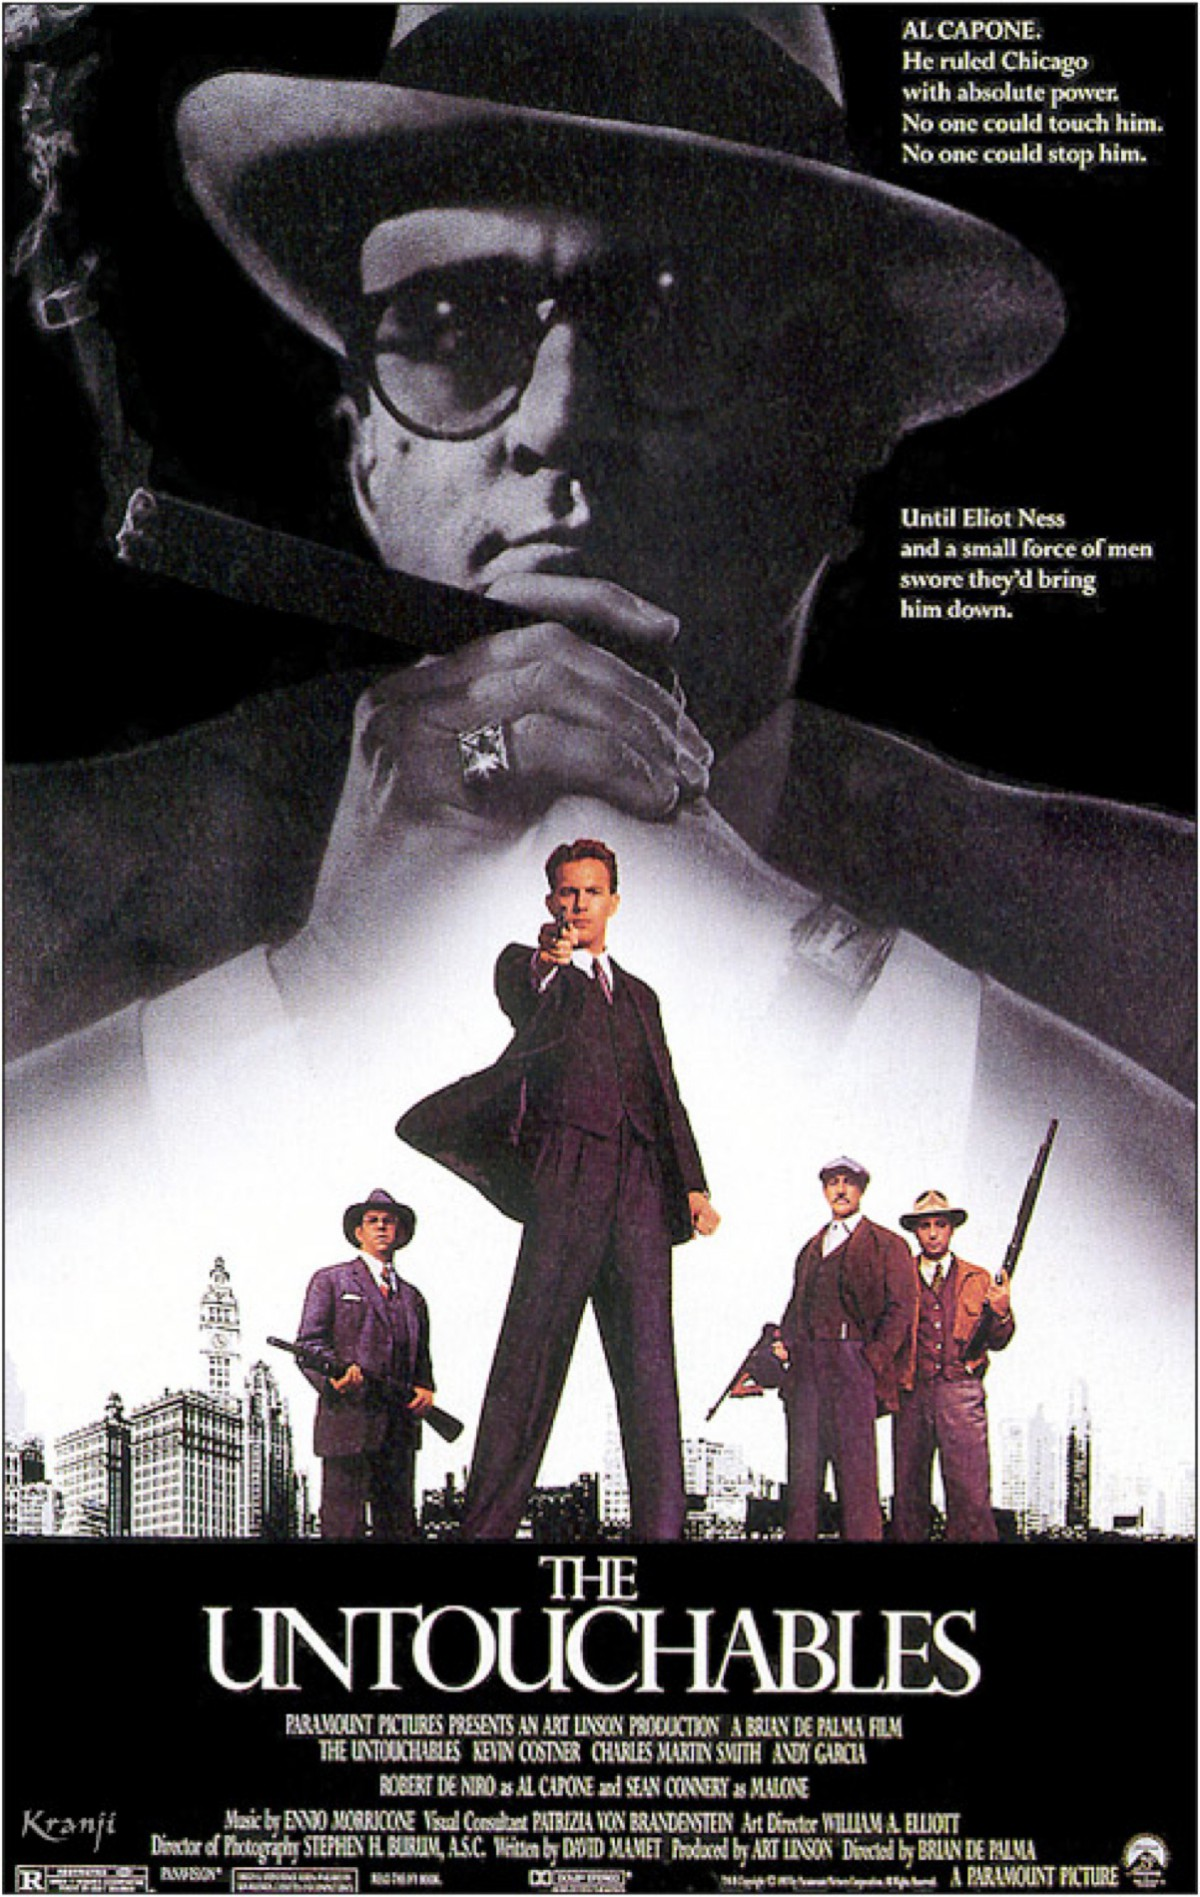 36. The Untouchables (1987)